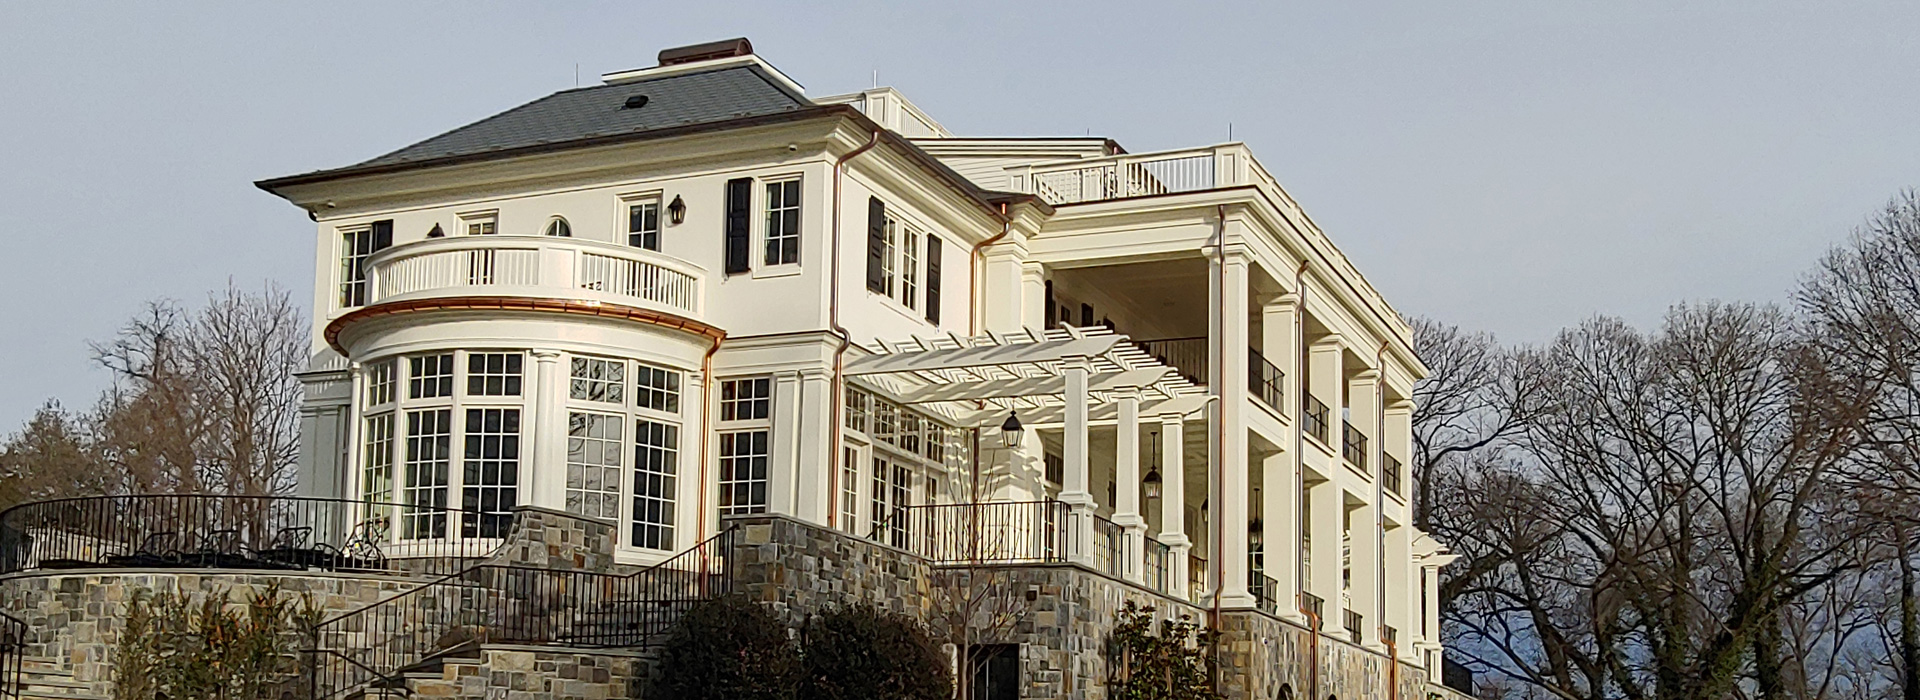 Custom built home in Potomac, Maryland